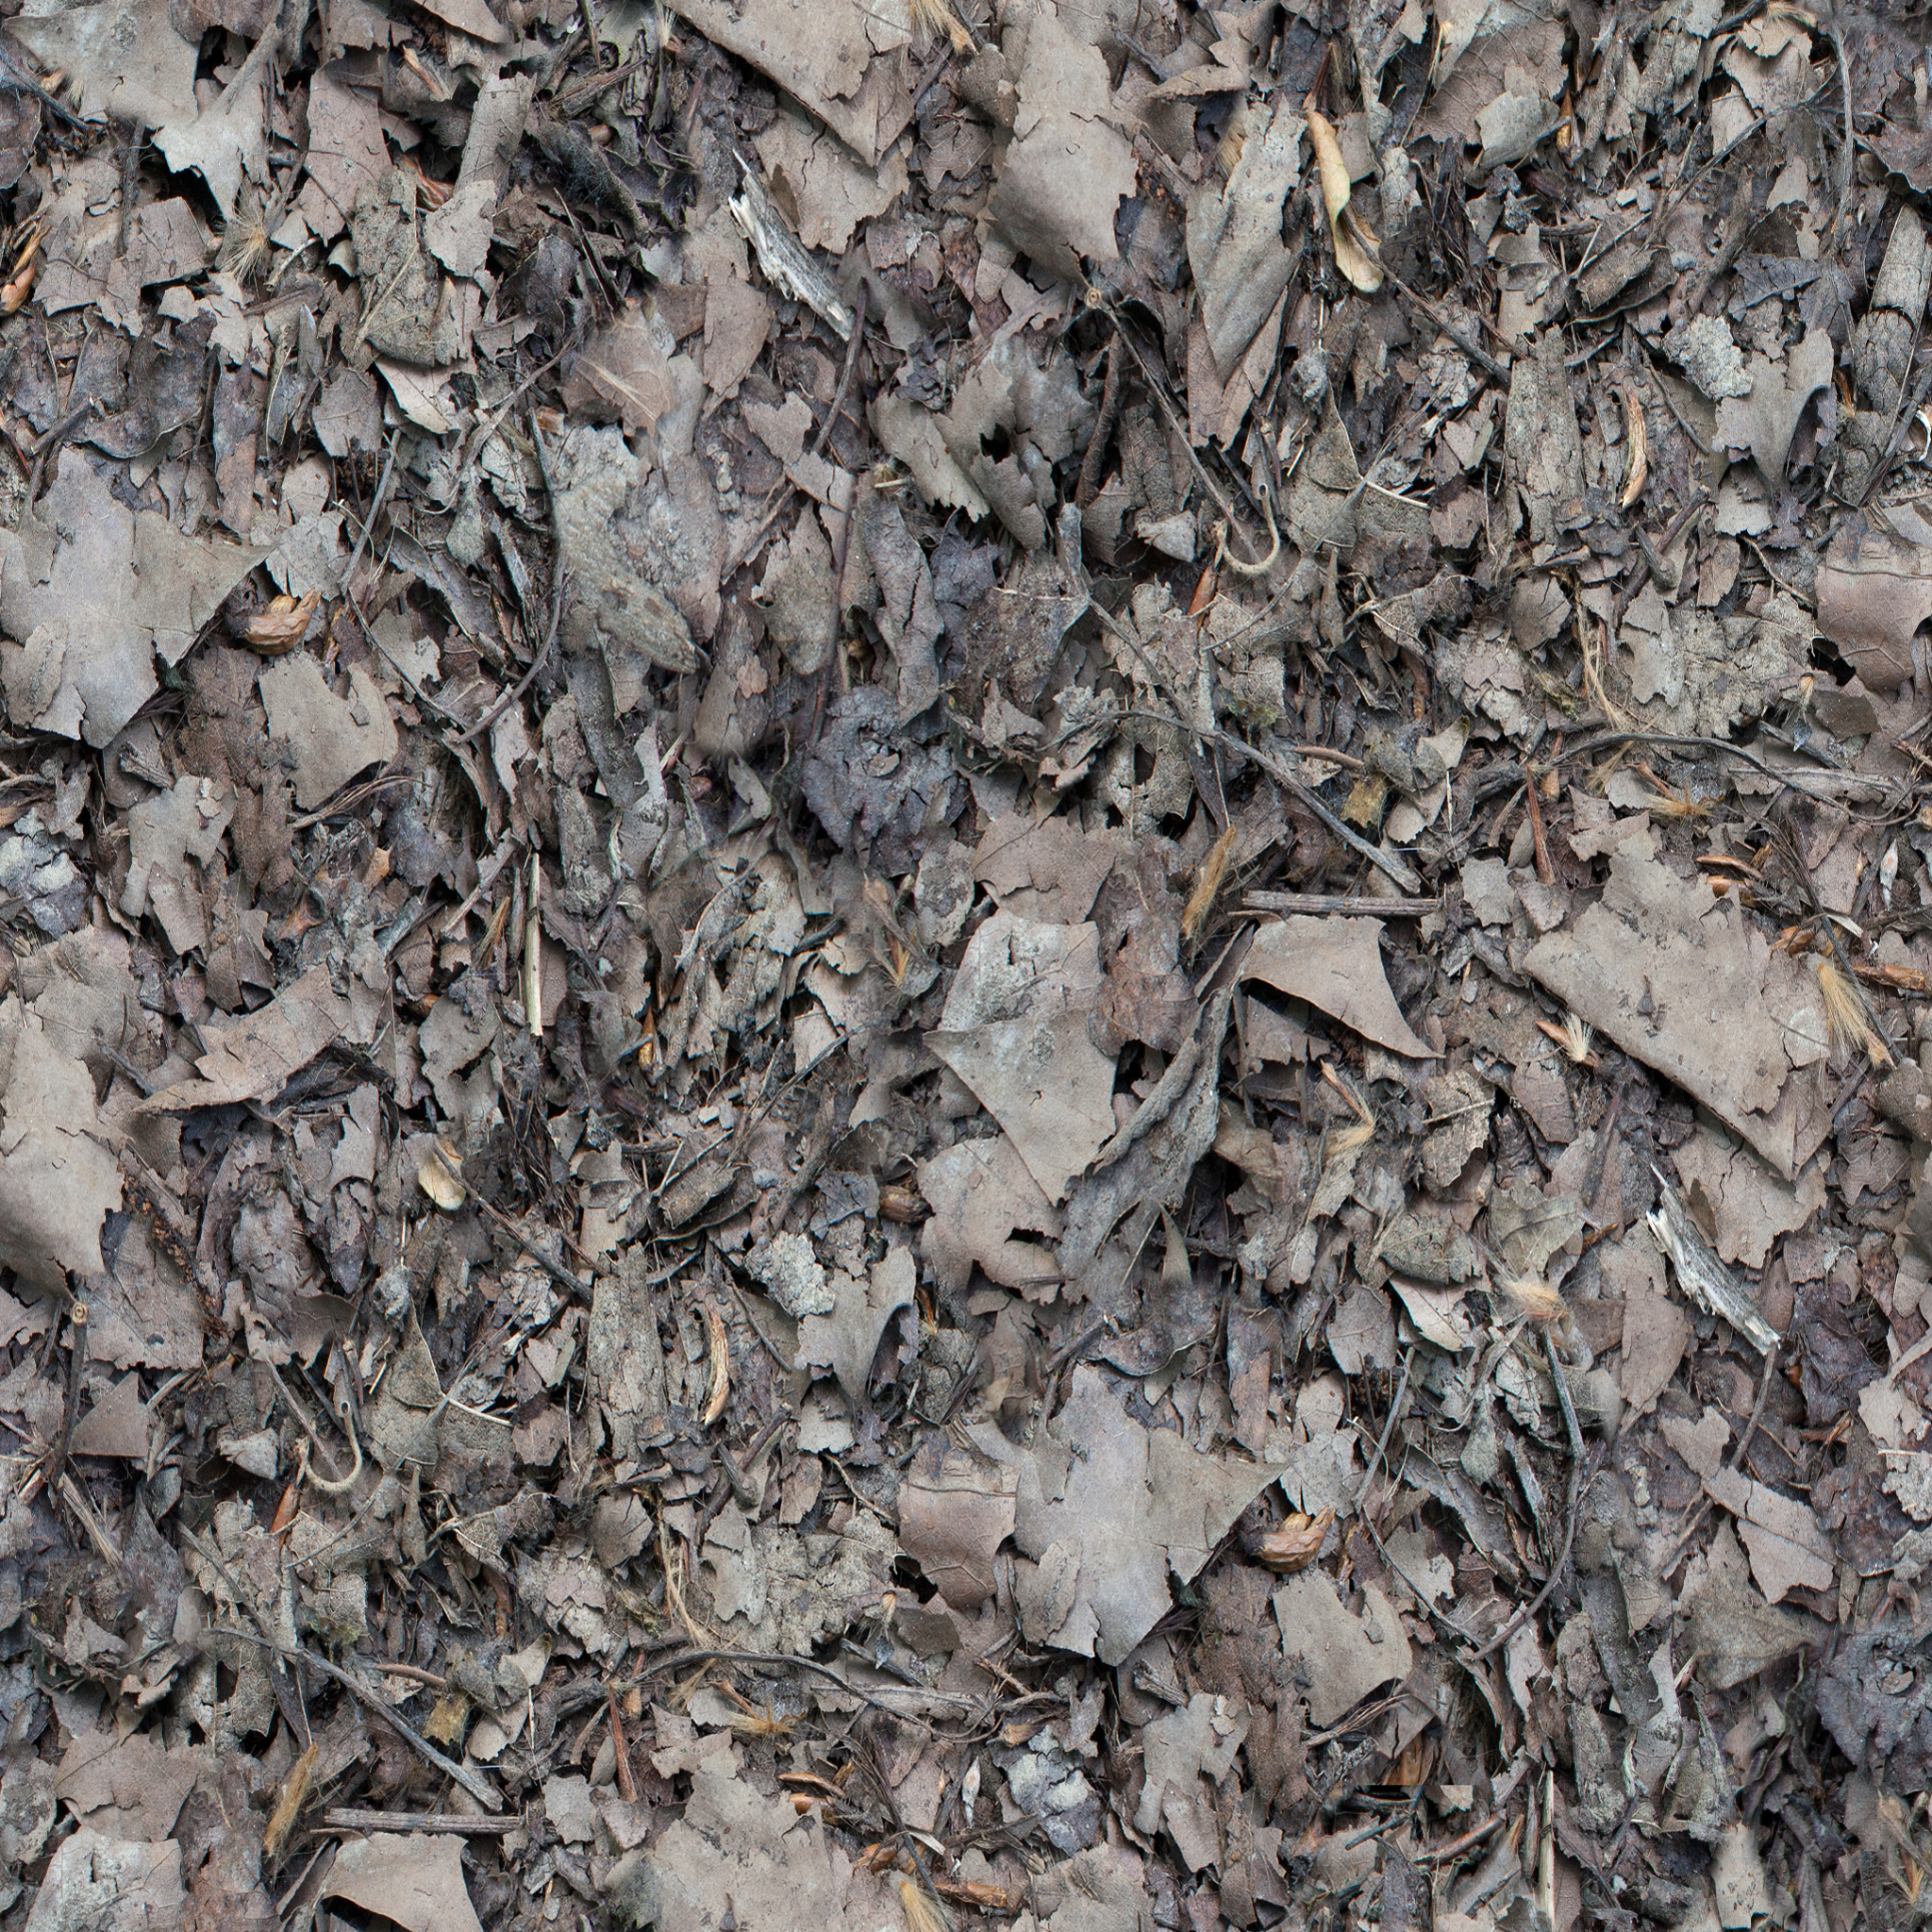 dark-brown-leaves.jpg